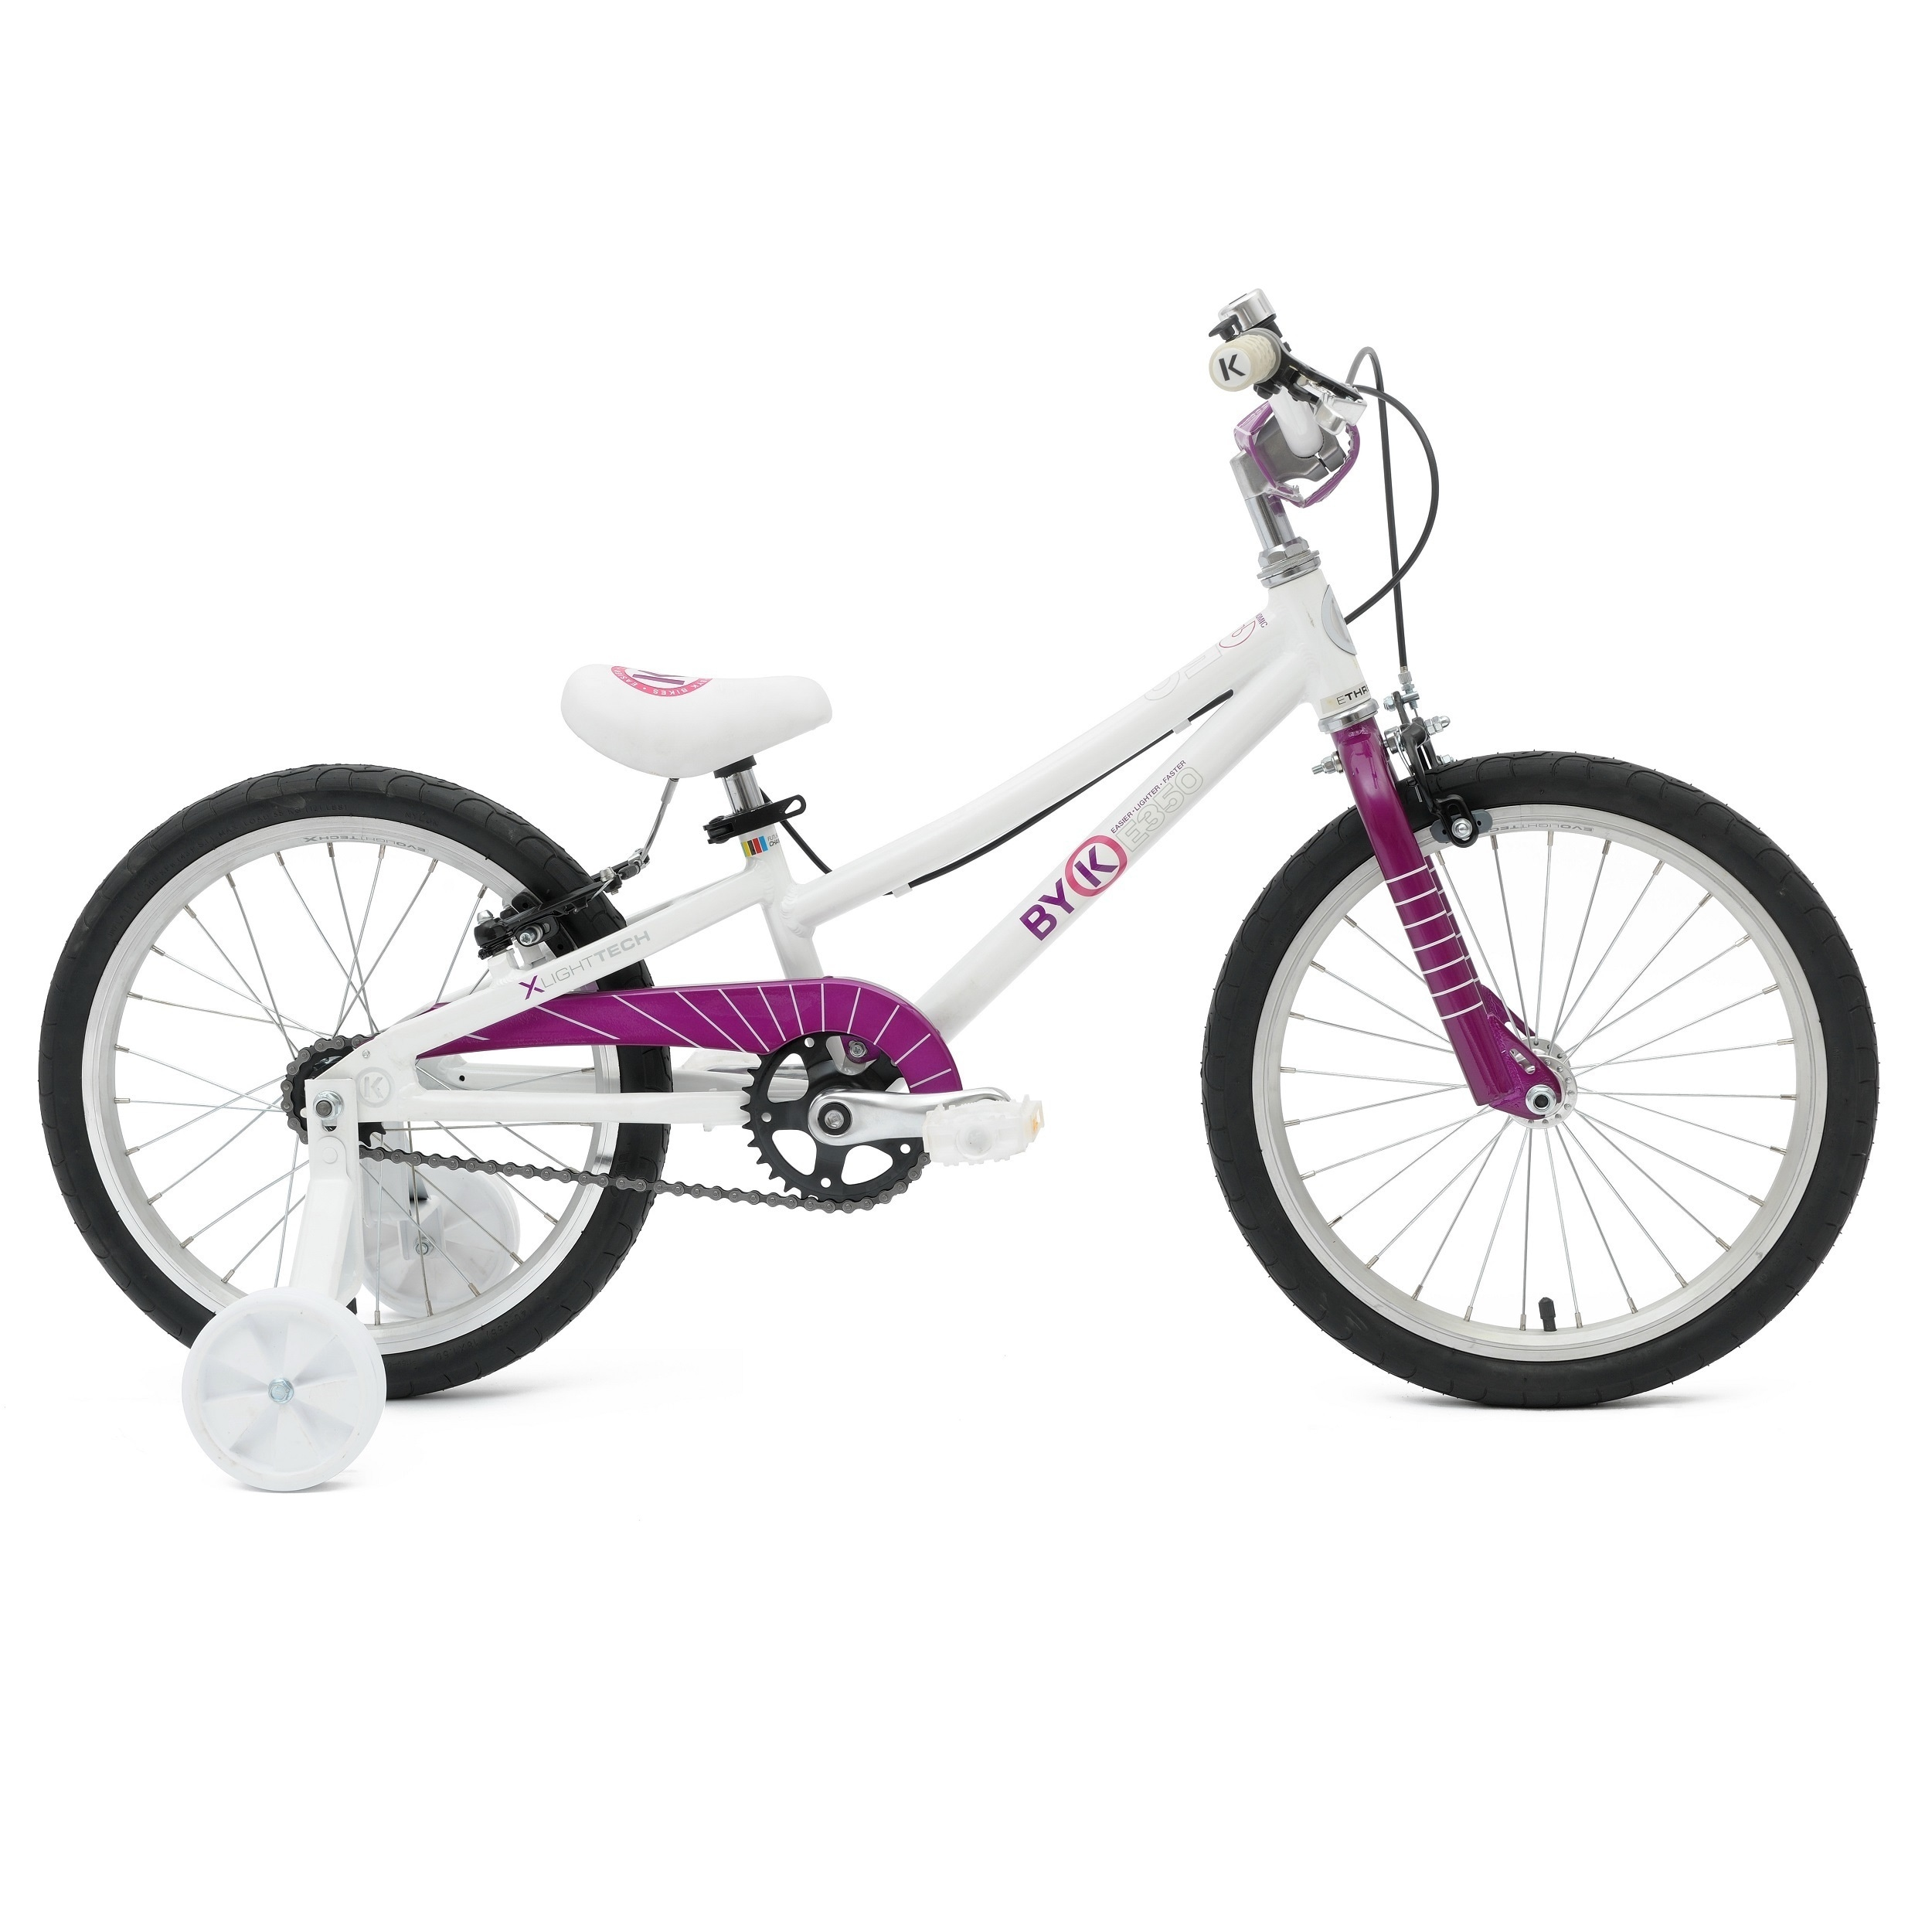 ByK E-350 Kids' Alloy Bike with 18-inch wheels and 8.5-in...